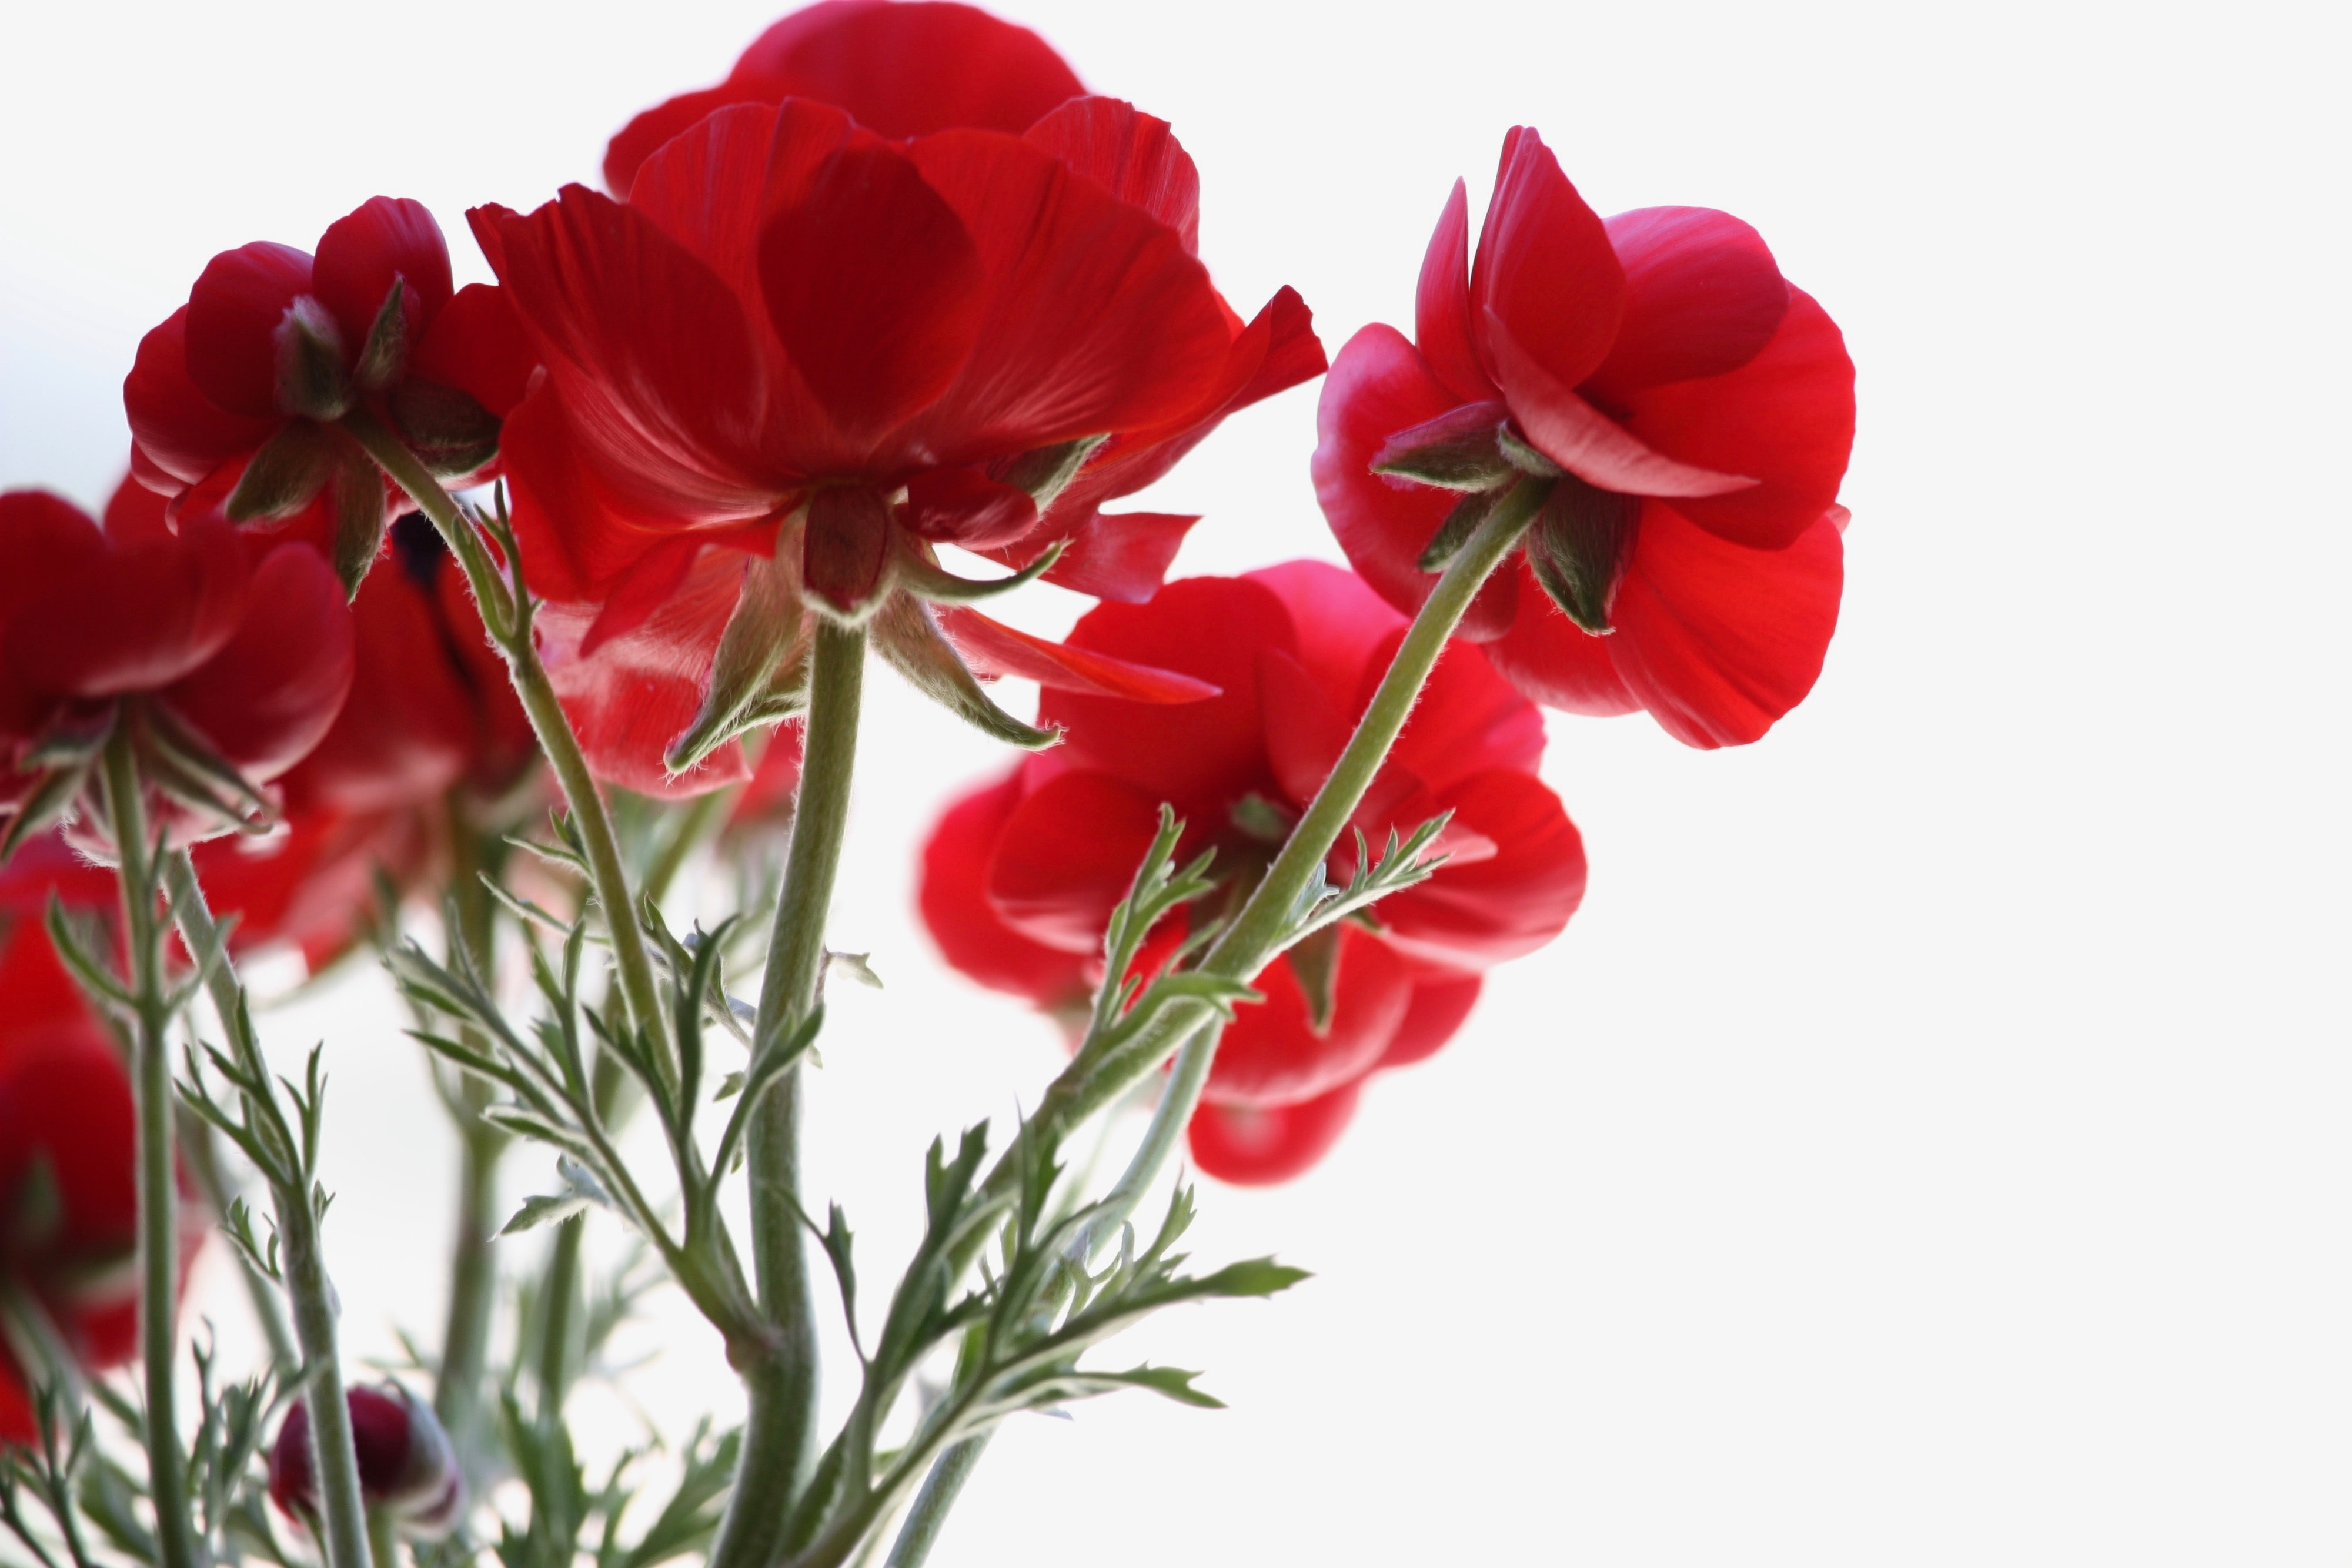 low angle view of red petaled flowers